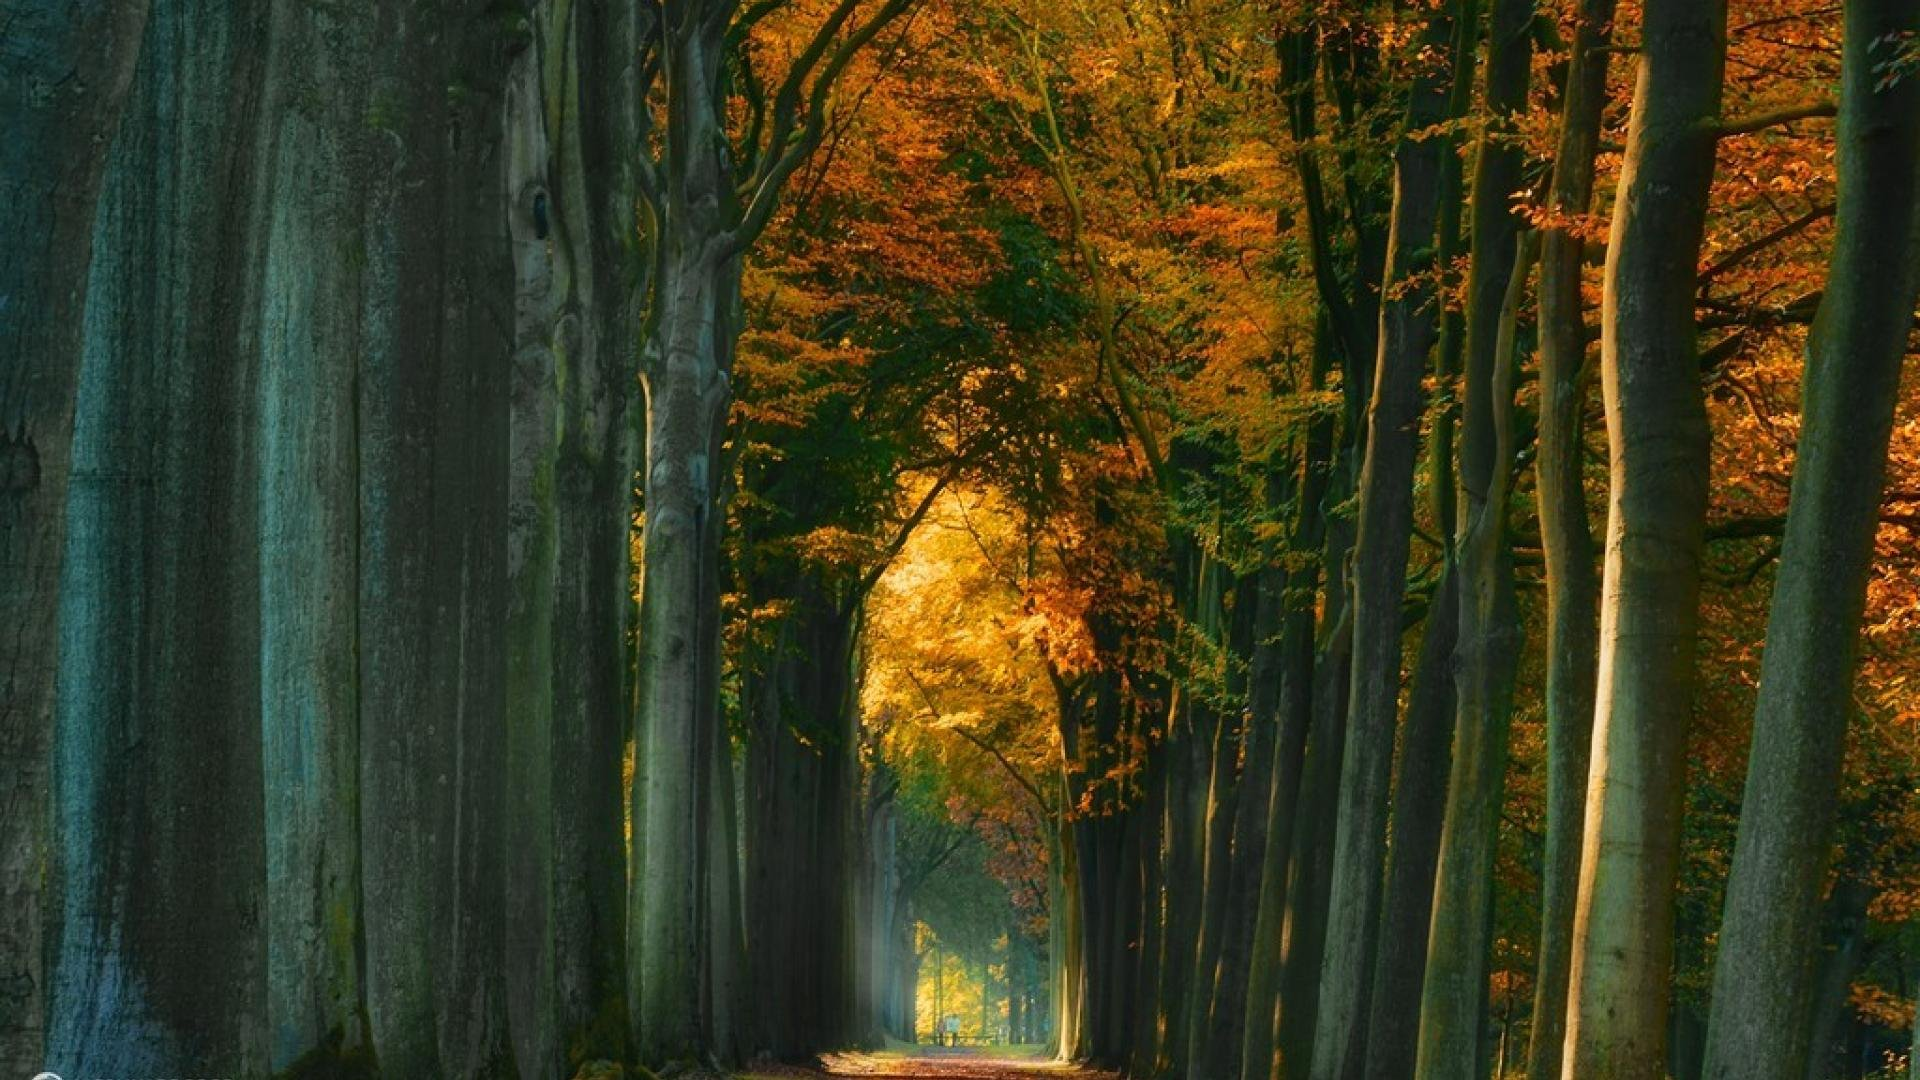 Fall Autumn Hd Wallpaper 1920x1080 Landscape Nature Tree Forest Woods Autumn Road Path People